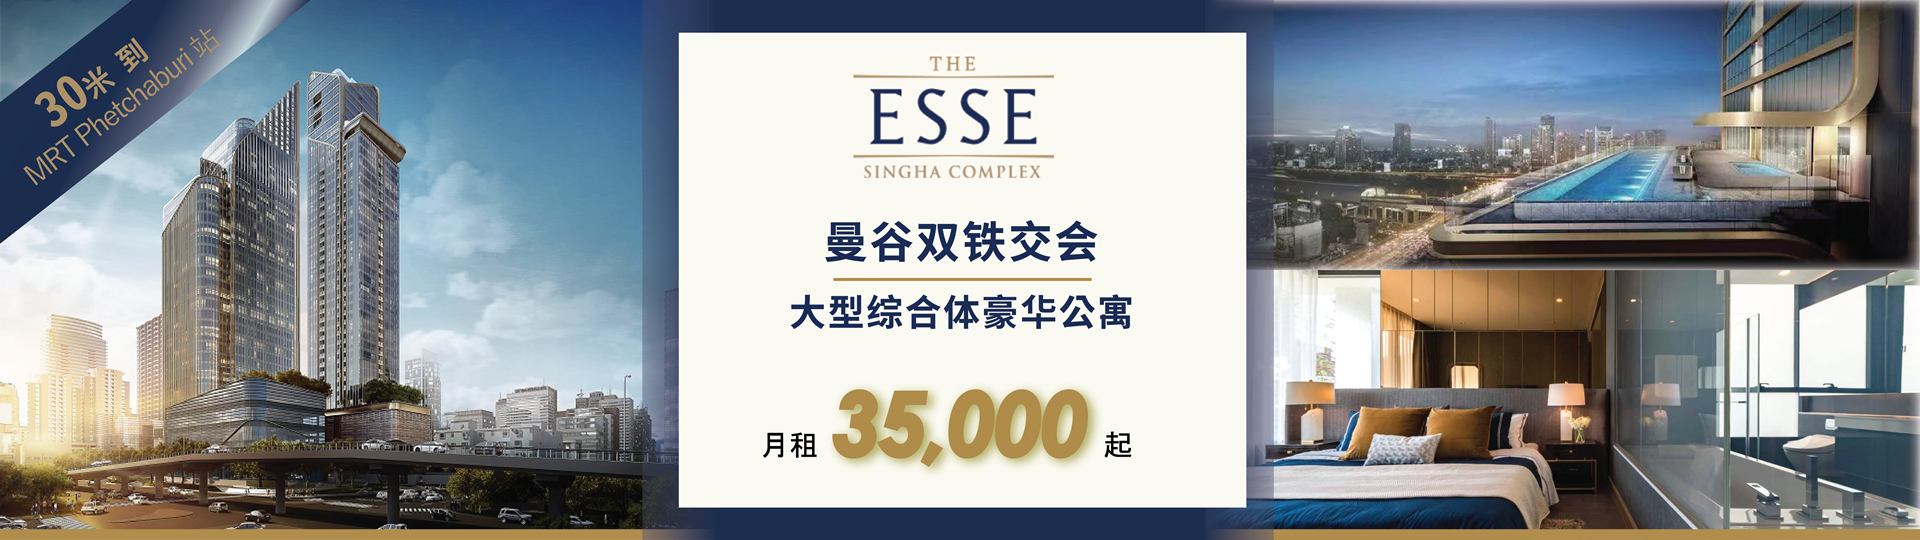 The esse @ sigha complex for rent